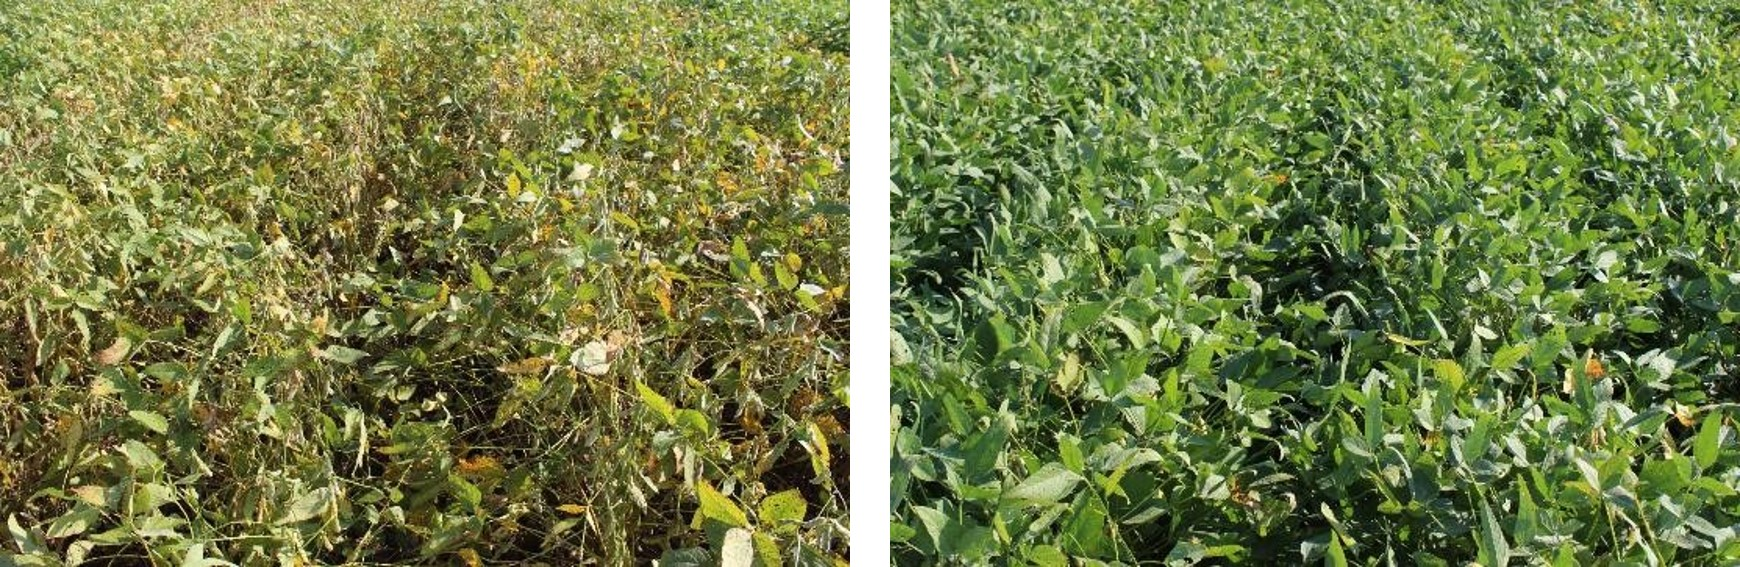 This agronomic image compares untreated soybeans with soybeans treated by Miravis Top fungicide.